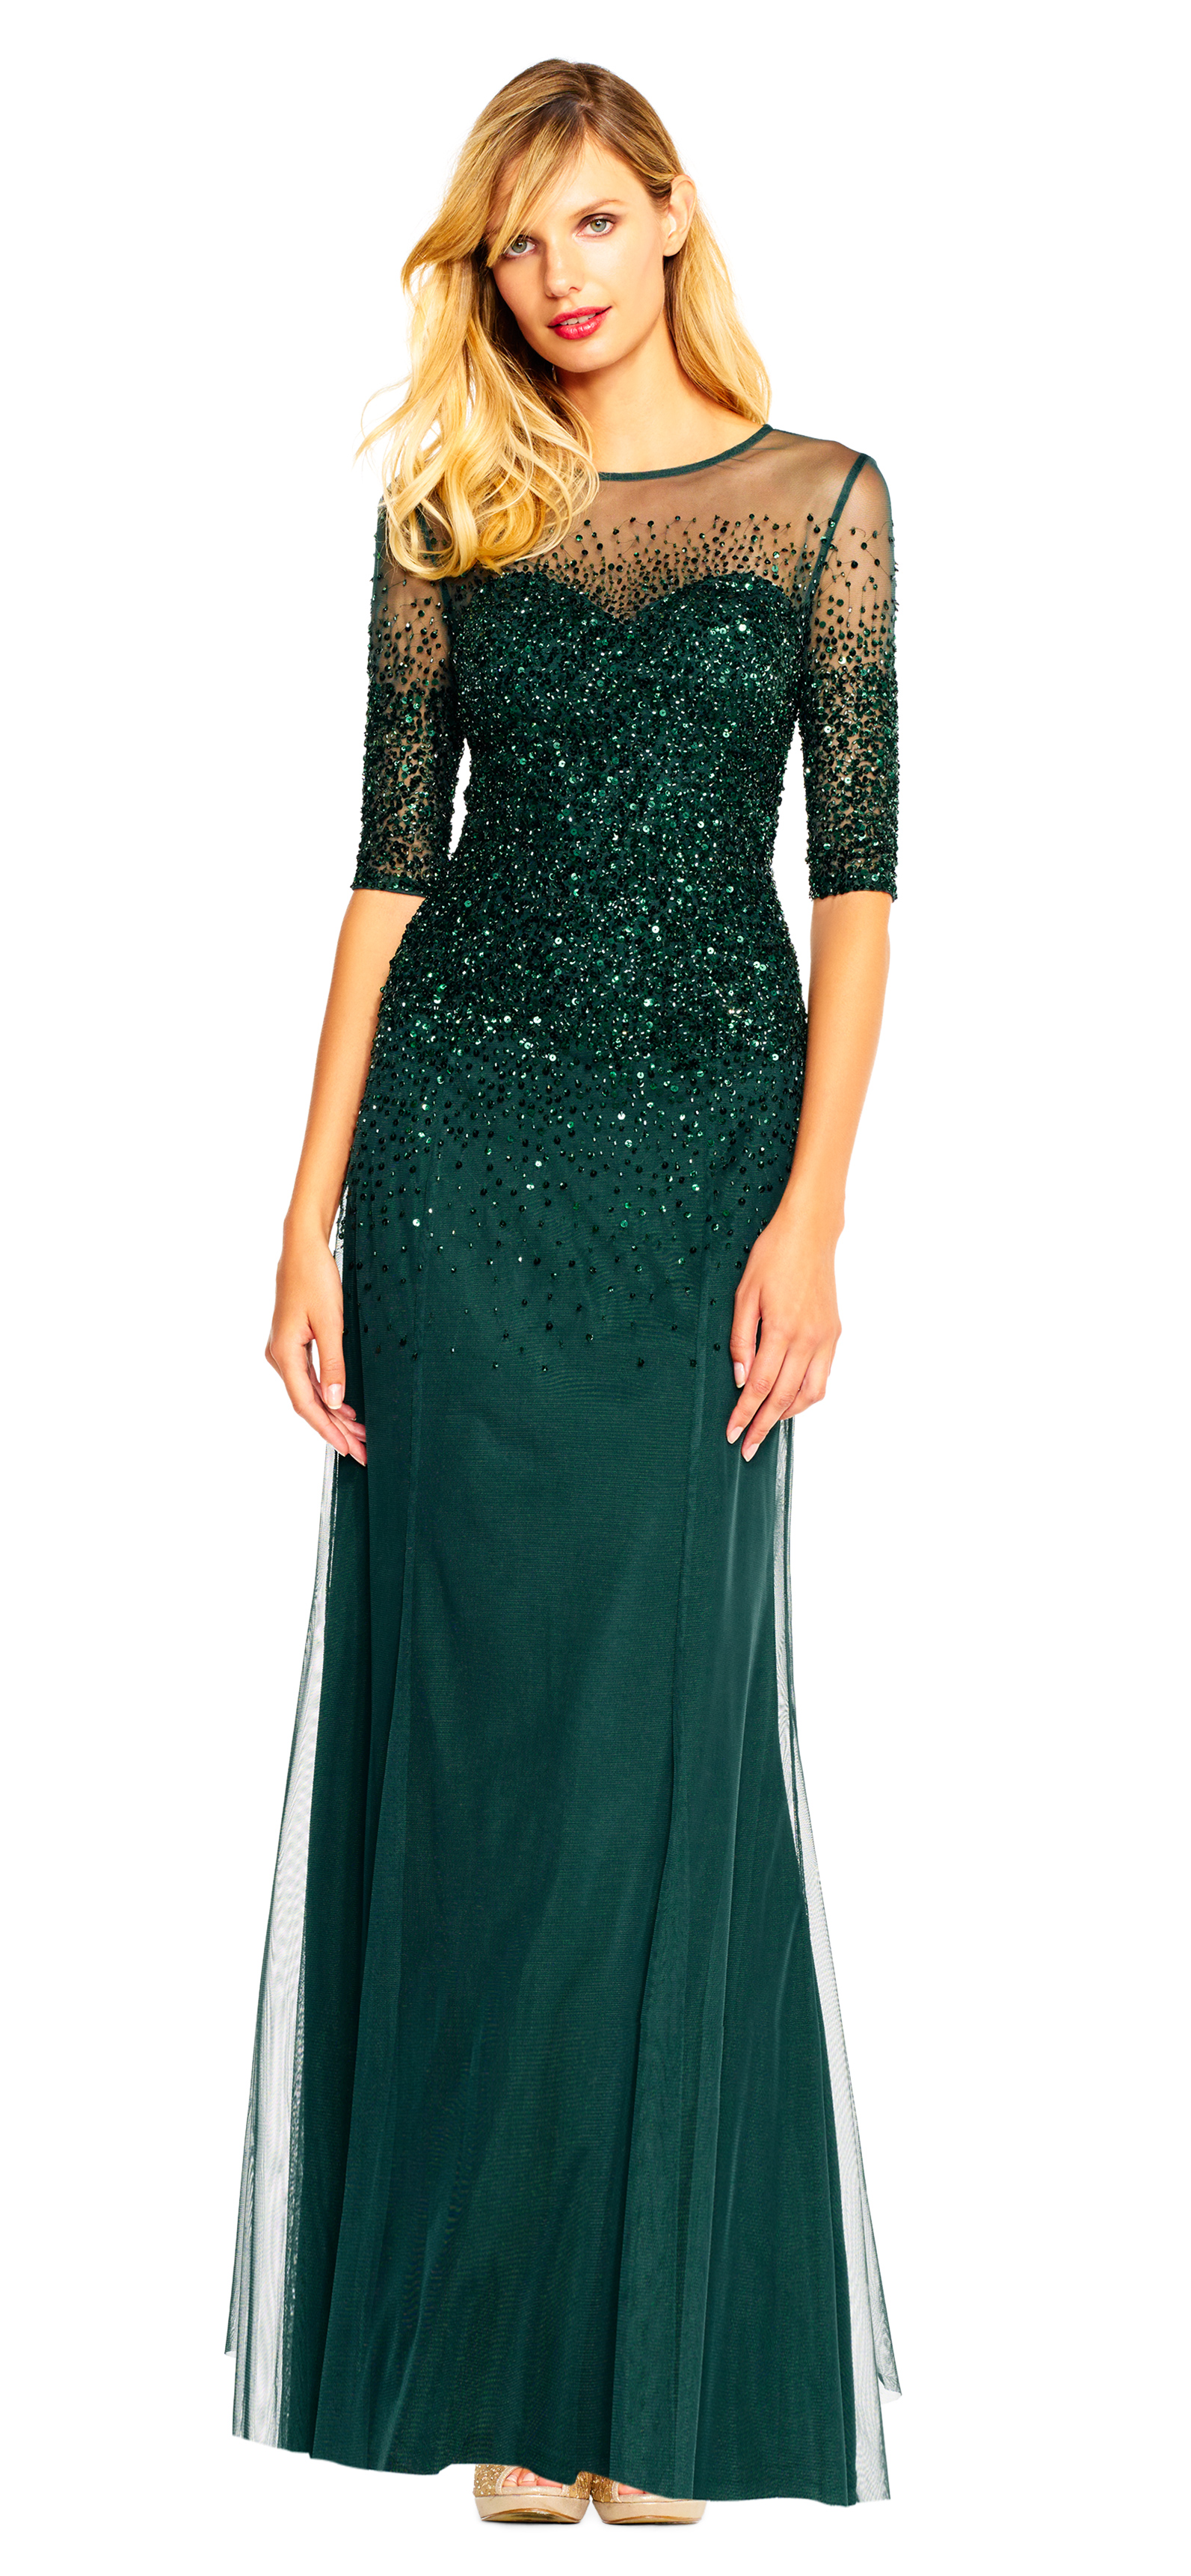 wedding after party dresses photo - 1